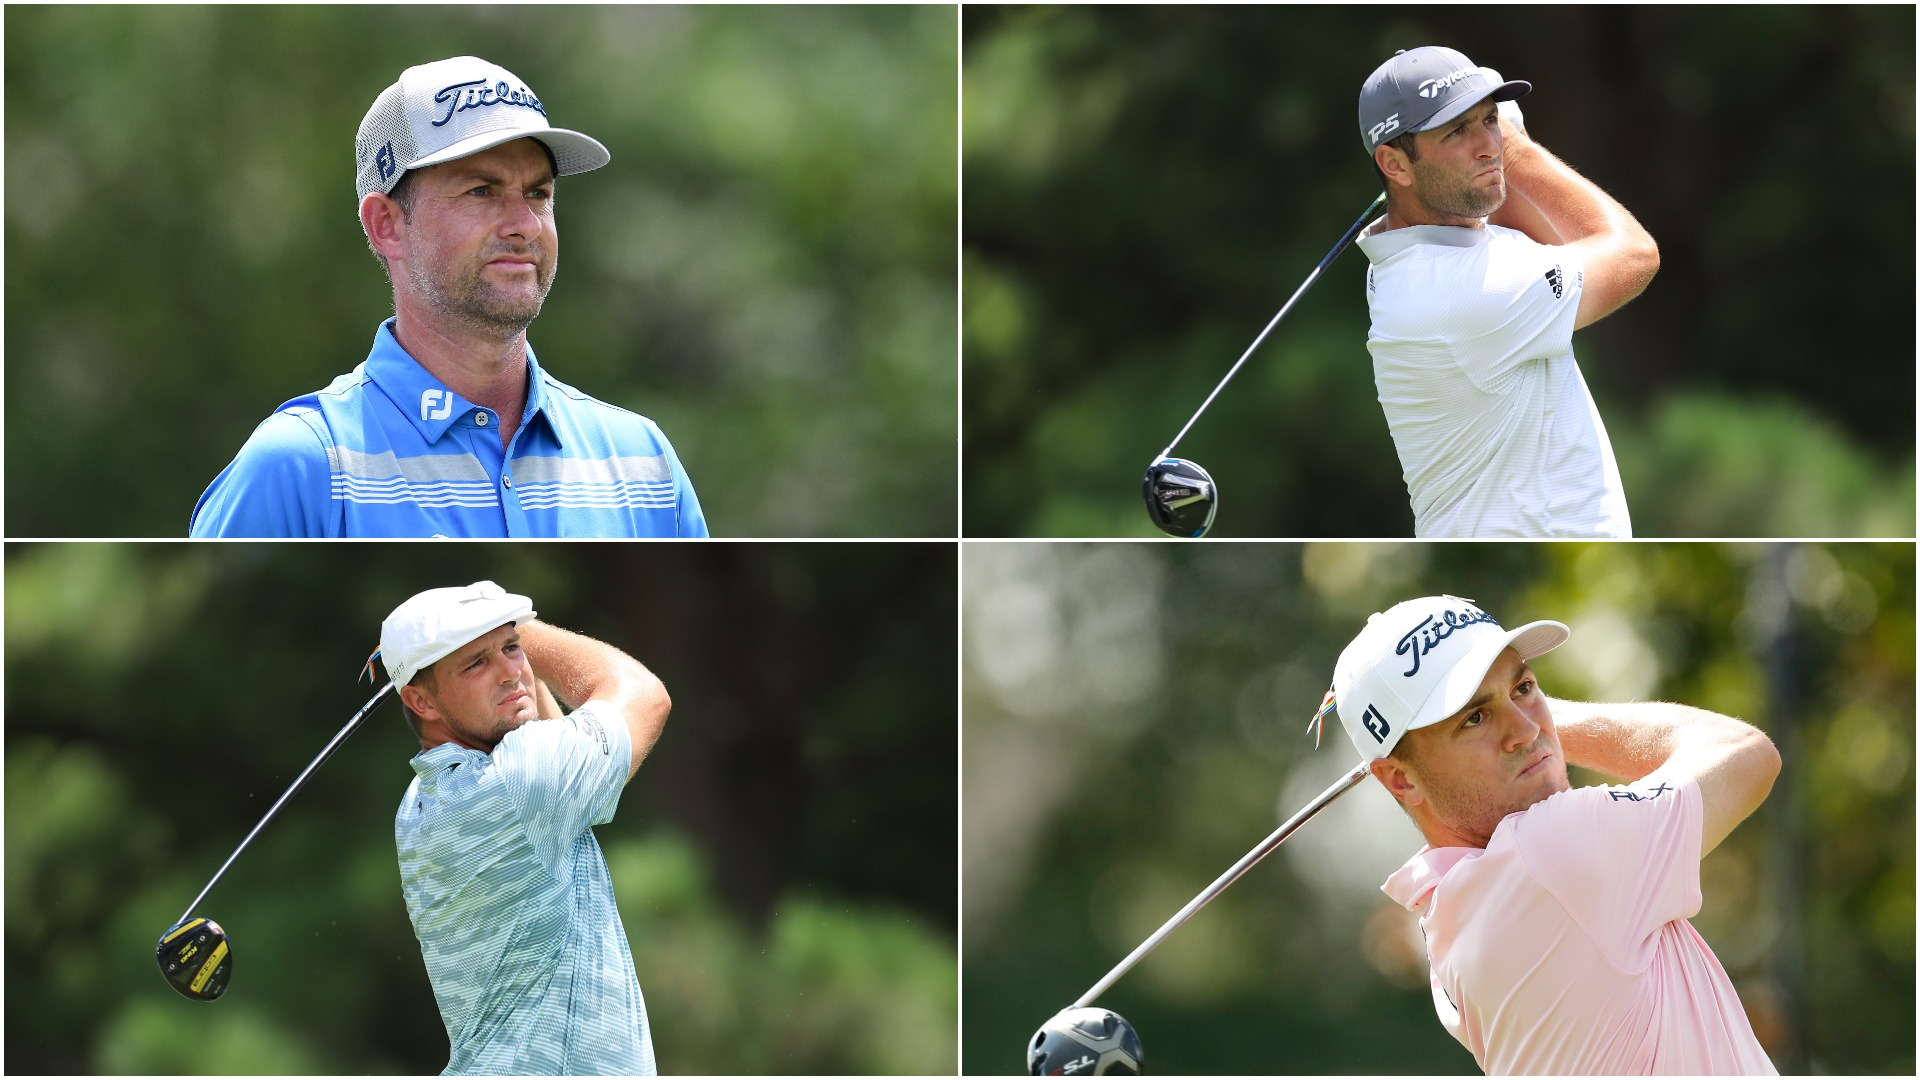 US PGA Championship: Simpson, Morikawa and the contenders to challenge the usual suspects